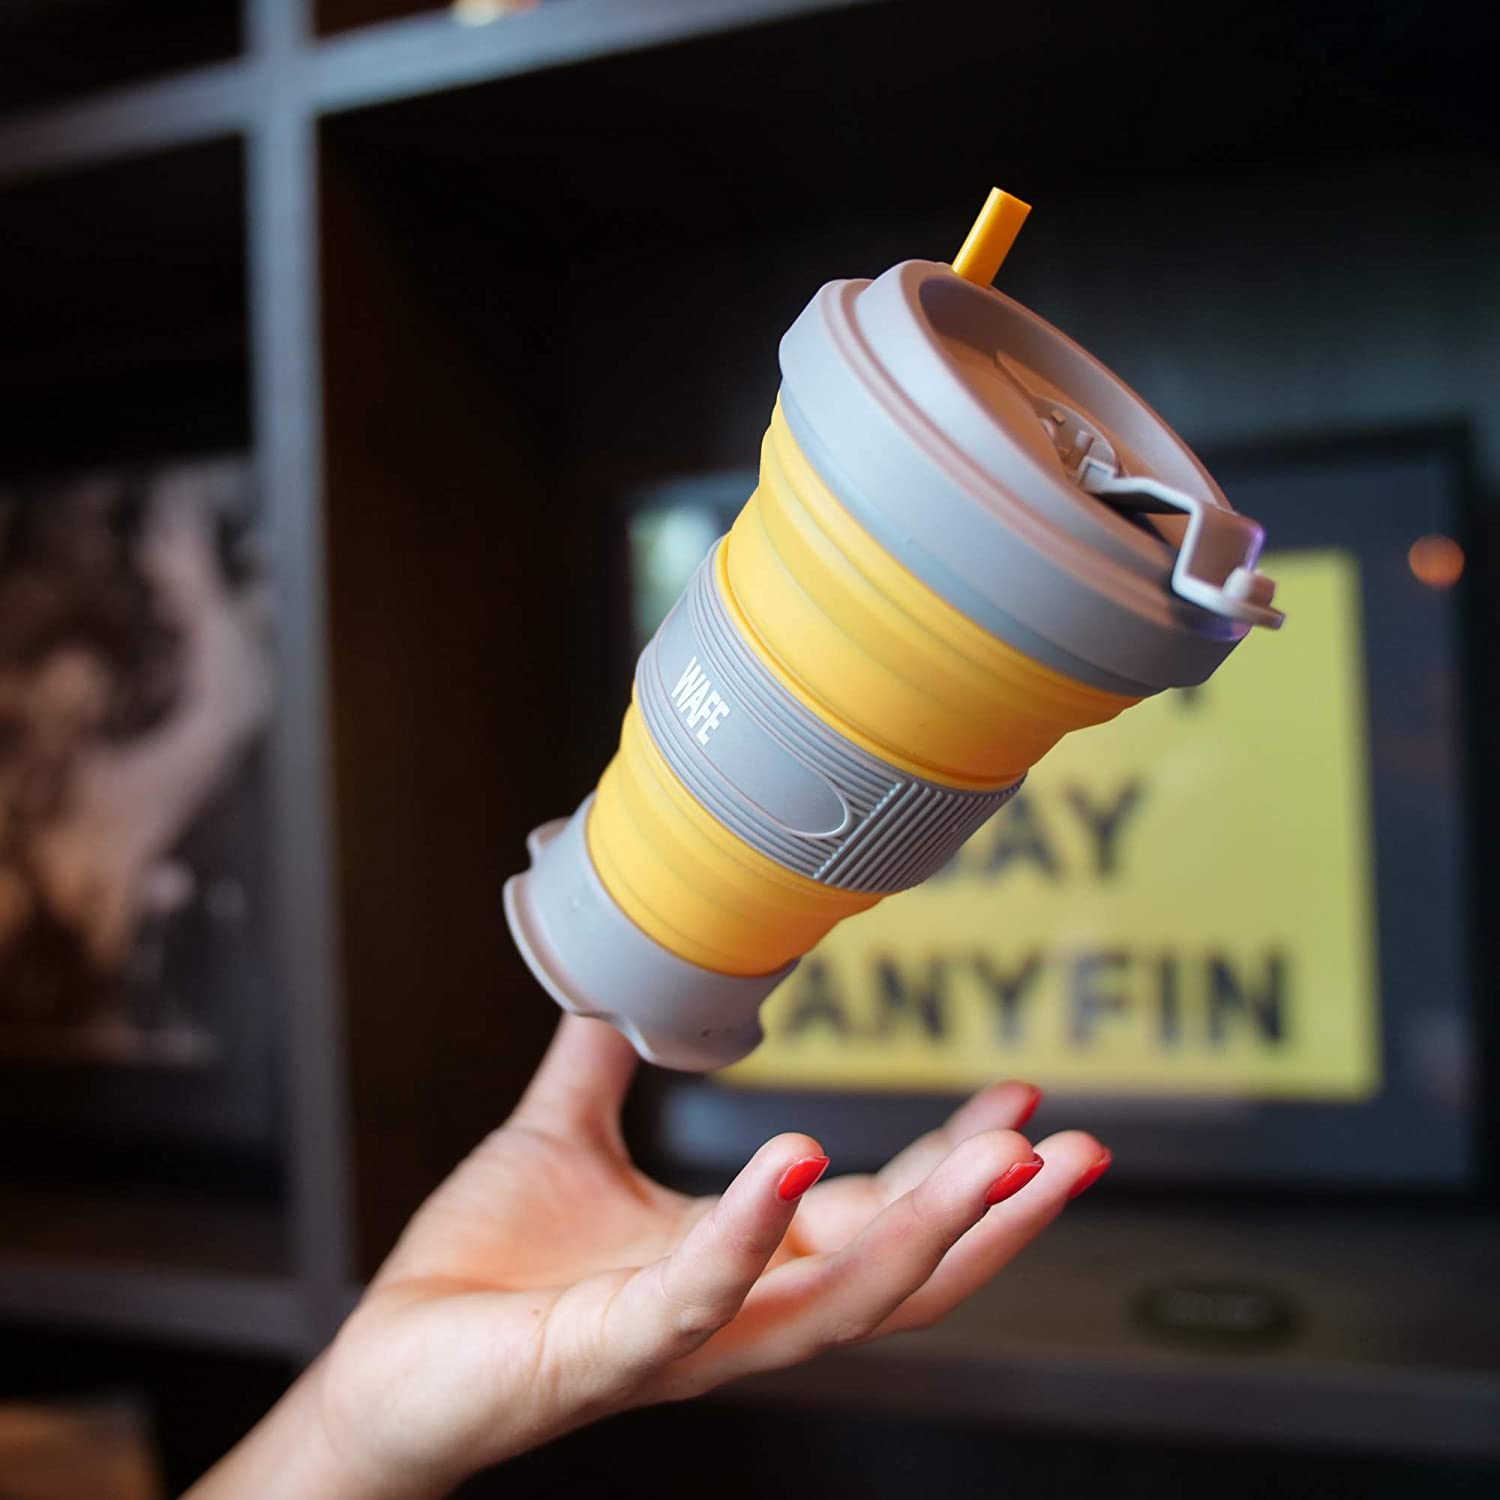 Fits in Pocket Reusable Eco Leak Proof Folding Cup 5 Sizes in 1 Collapsible Coffee Cup Silicone with Lids Sunflower BPA Free Travel Portable Foldable Mug